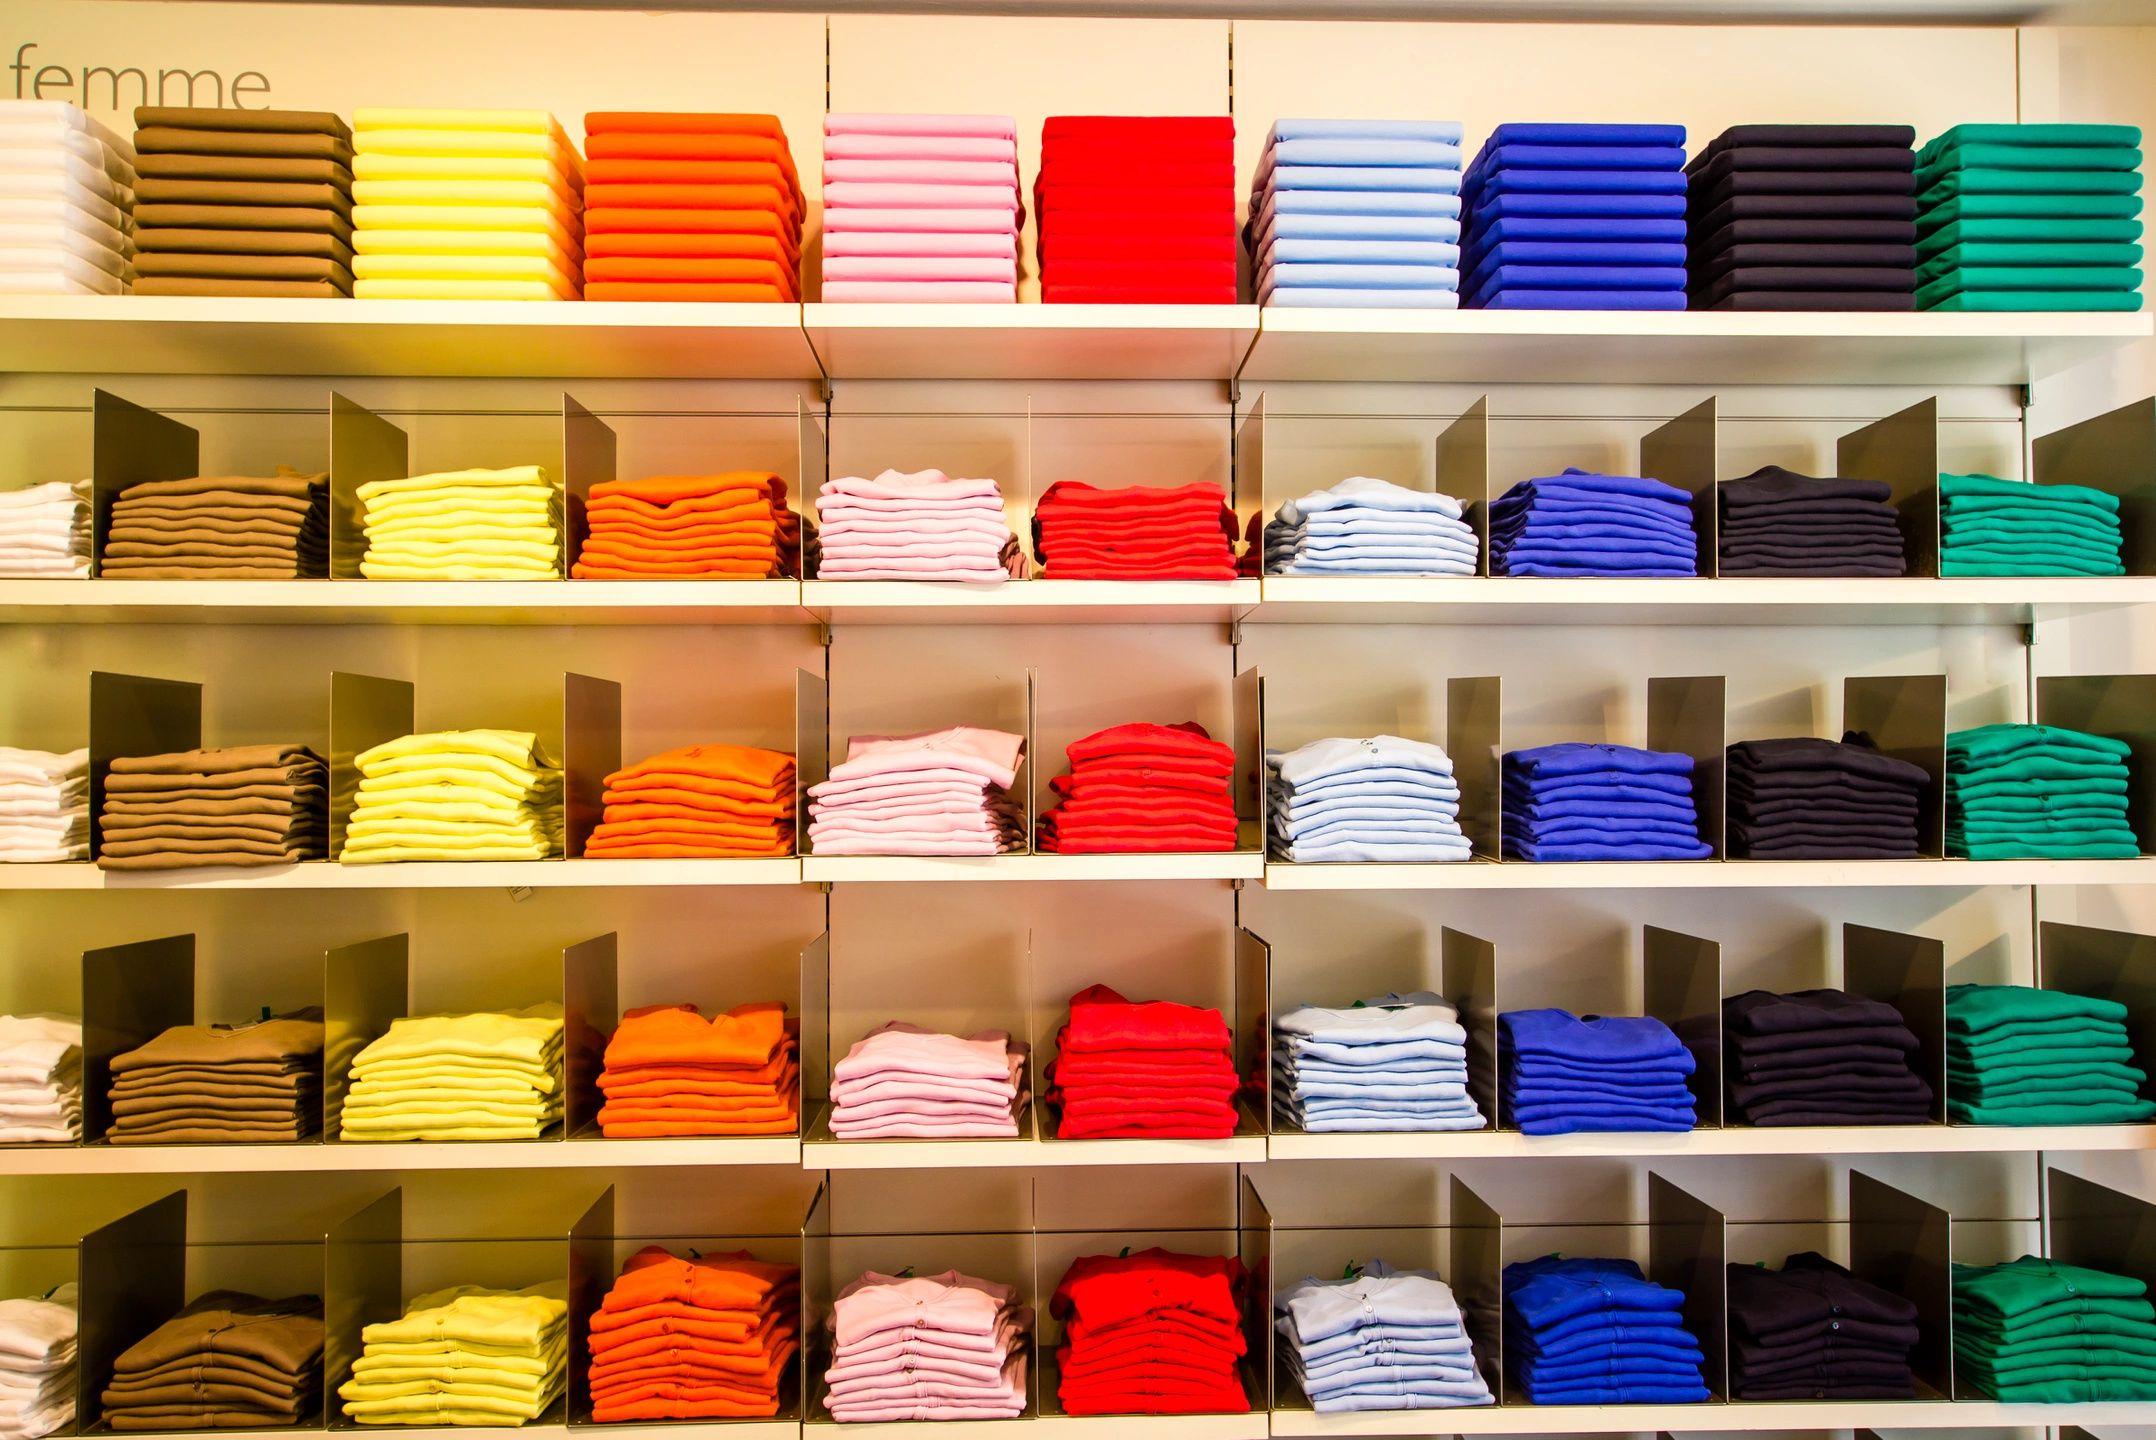 neatly organized colored shirts